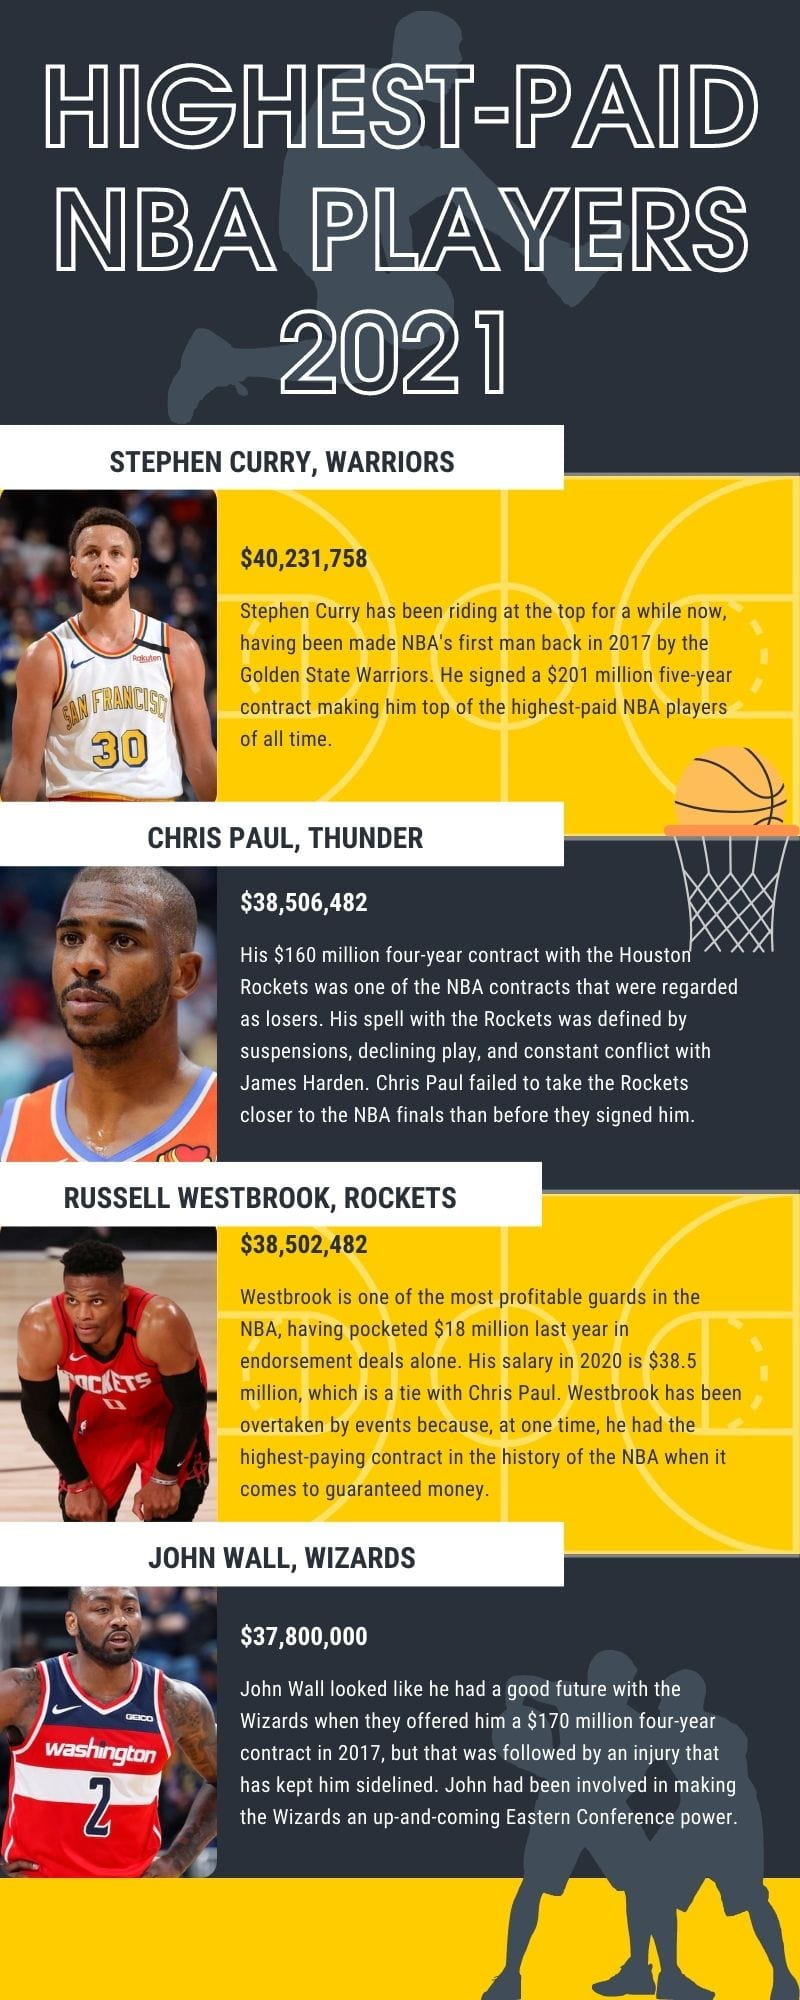 highest-paid NBA players